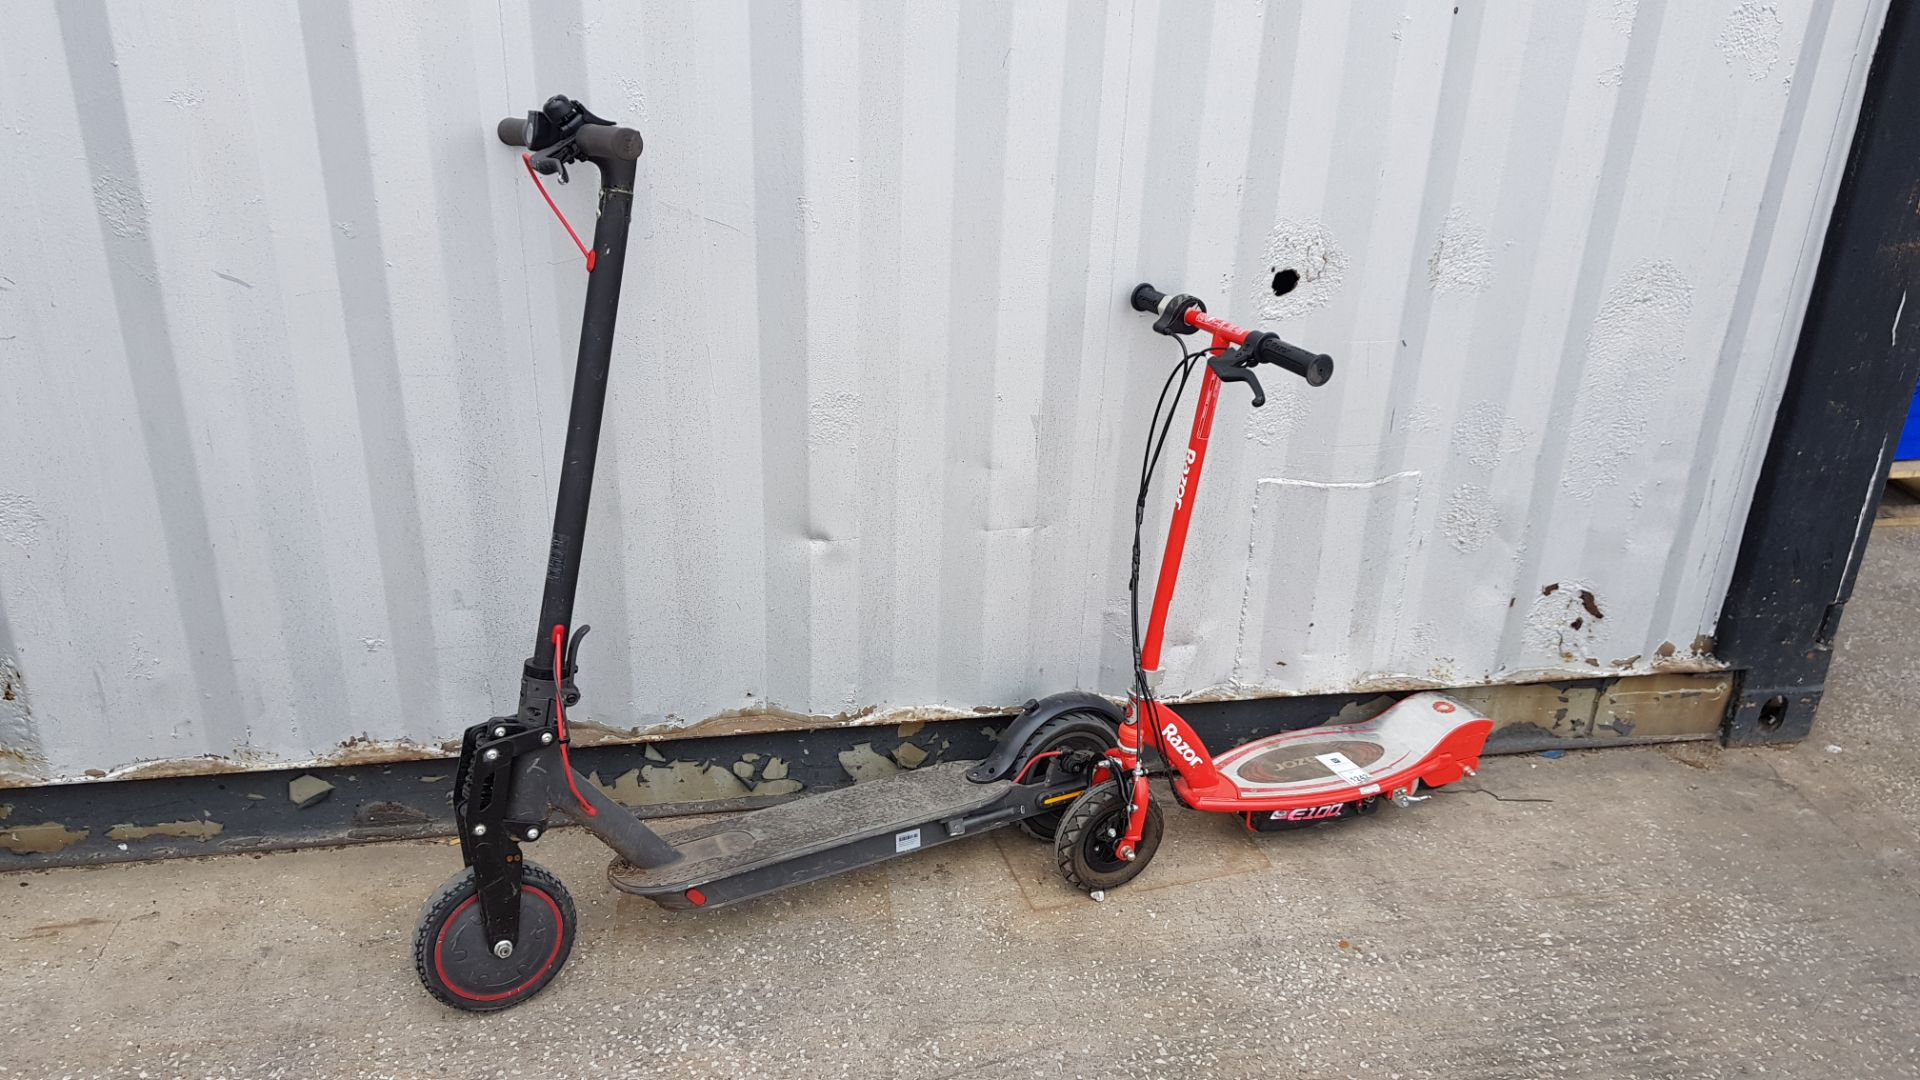 1 X RAZOR ELECTRIC SCOOTER AND 1 X ELECTRIC SCOOTER